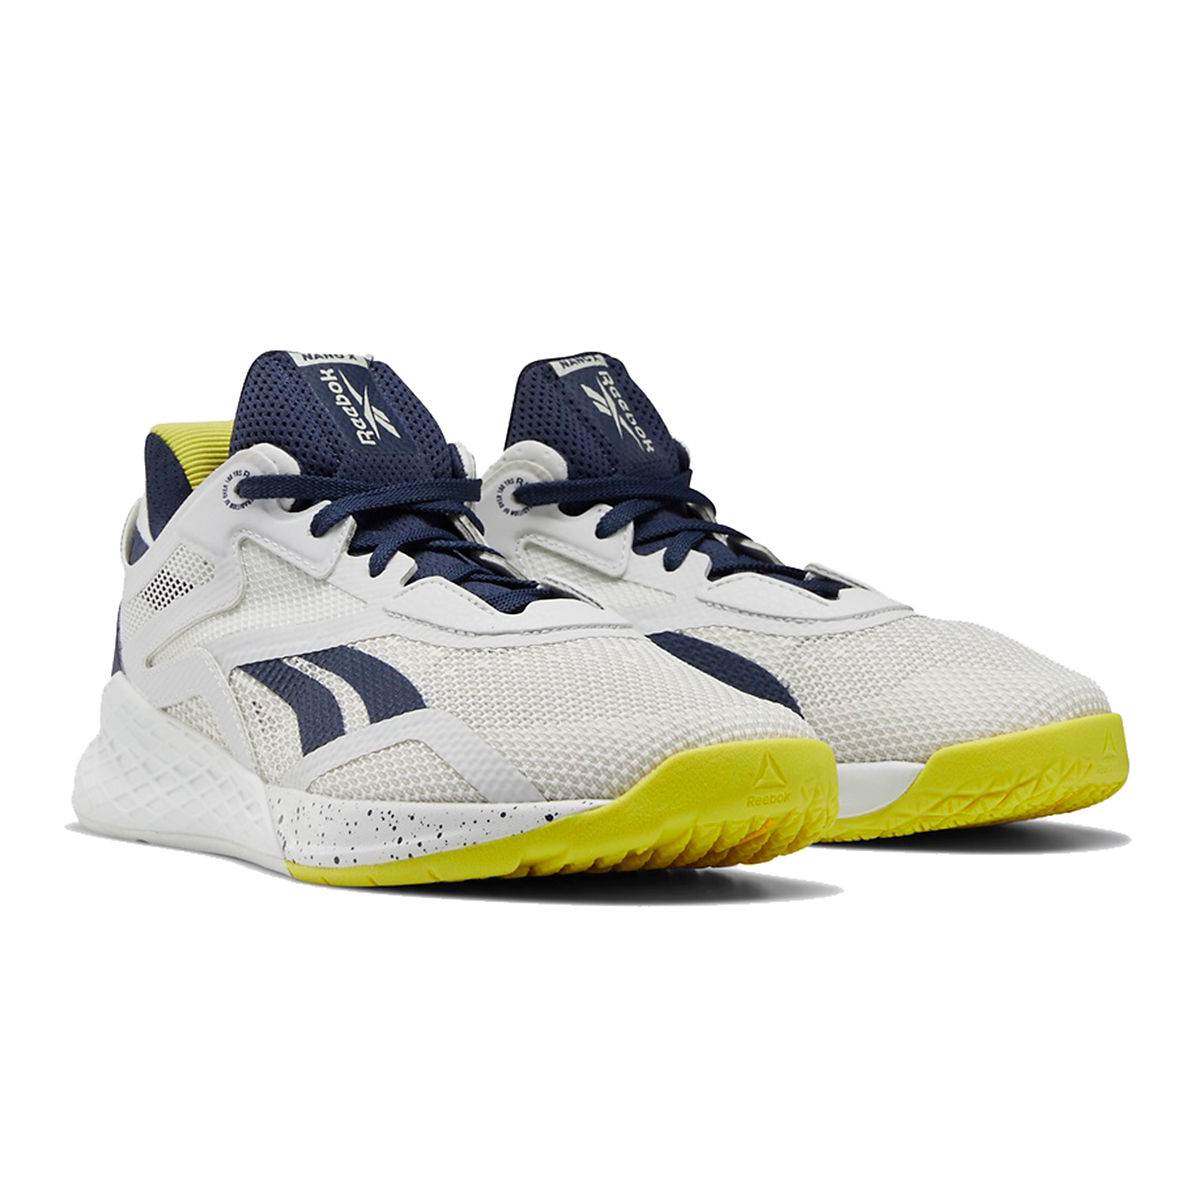 Women's Reebok Nano X Training Shoe - Color: True Grey/Vector Navy/Chartreuse - Size: 5 - Width: Regular, True Grey/Vector Navy/Chartreuse, large, image 2